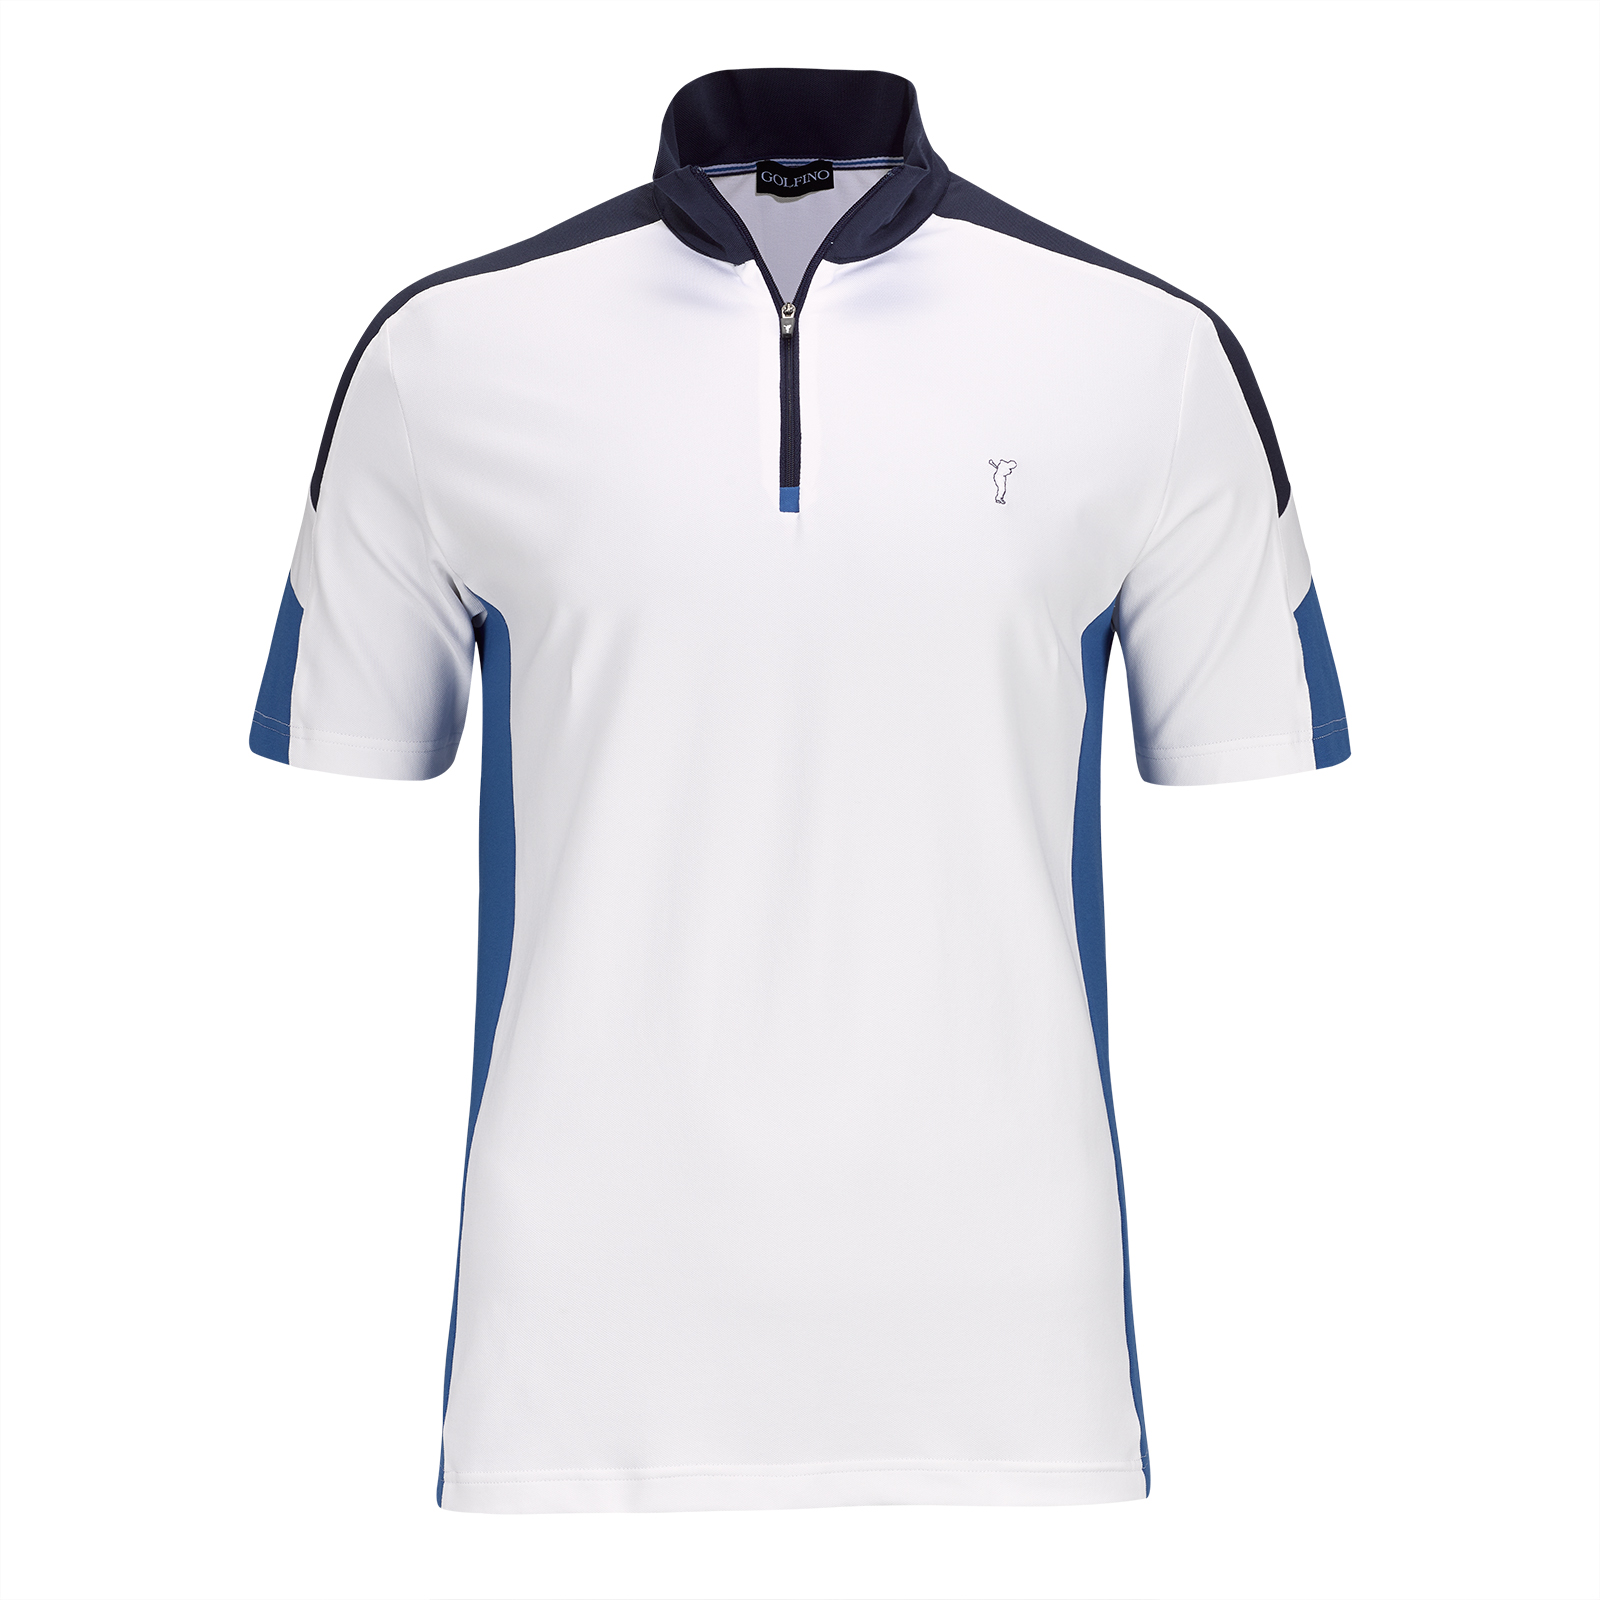 Performance short sleeve men's golf troyer with UV protection in Pro-Look